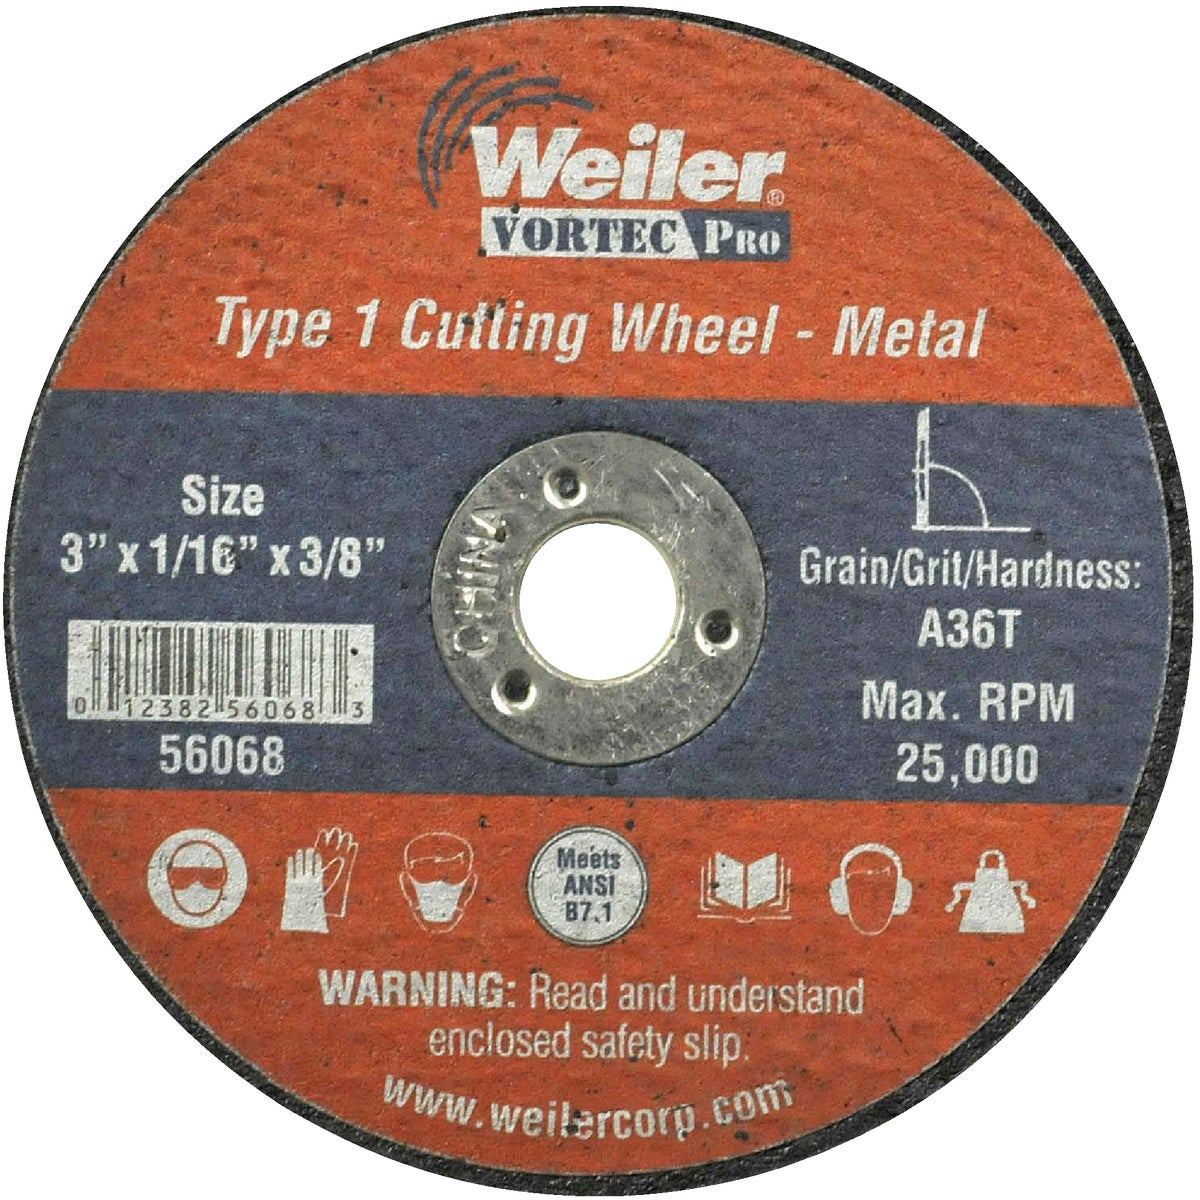 3X1/16 ABRASIVE WHEEL - 36537 by Weiler Corporation